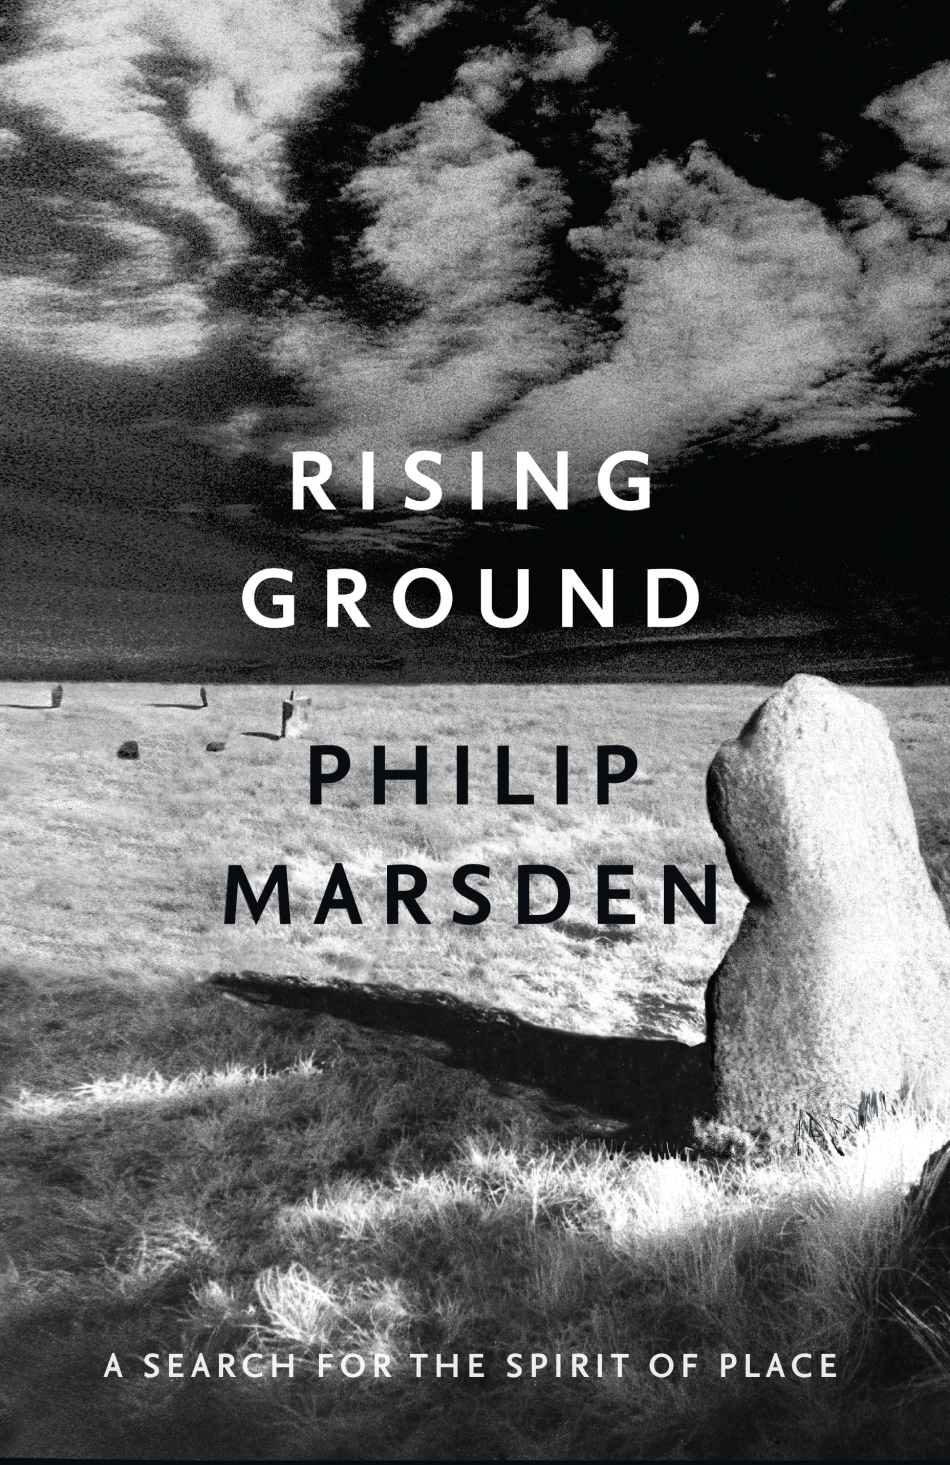 Book Review: Rising Ground by Philip Marsden